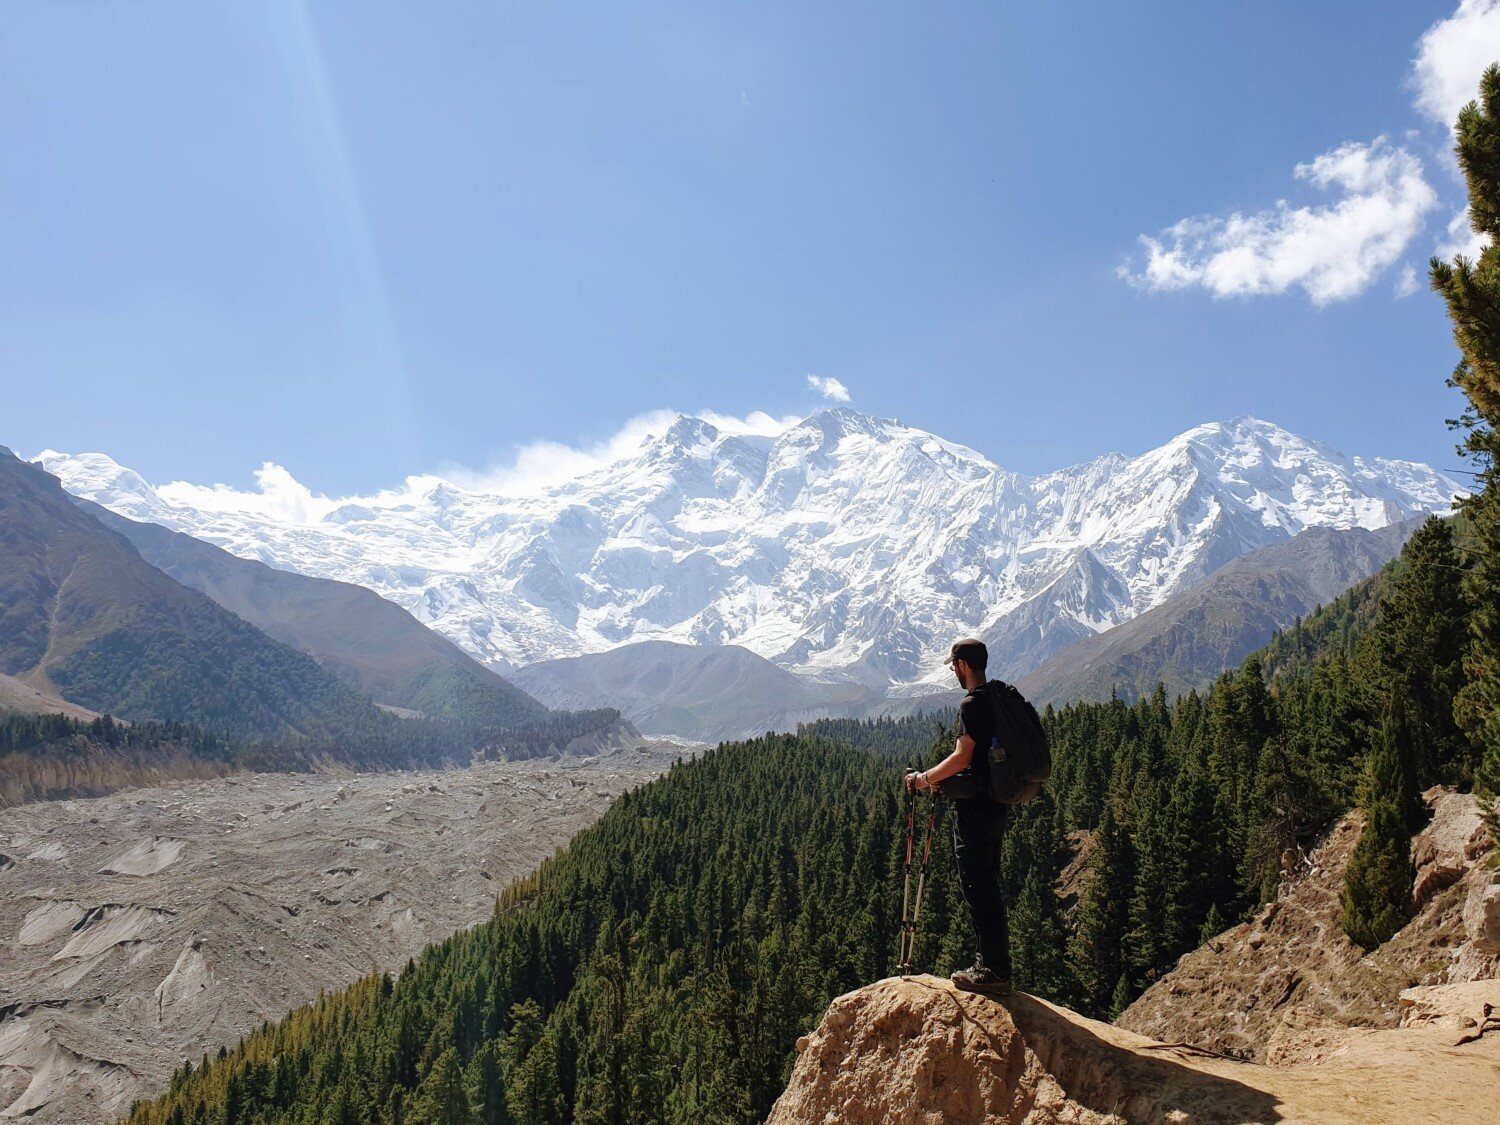 The views of Nanga Parbat from Fairy Meadows are just stunning.